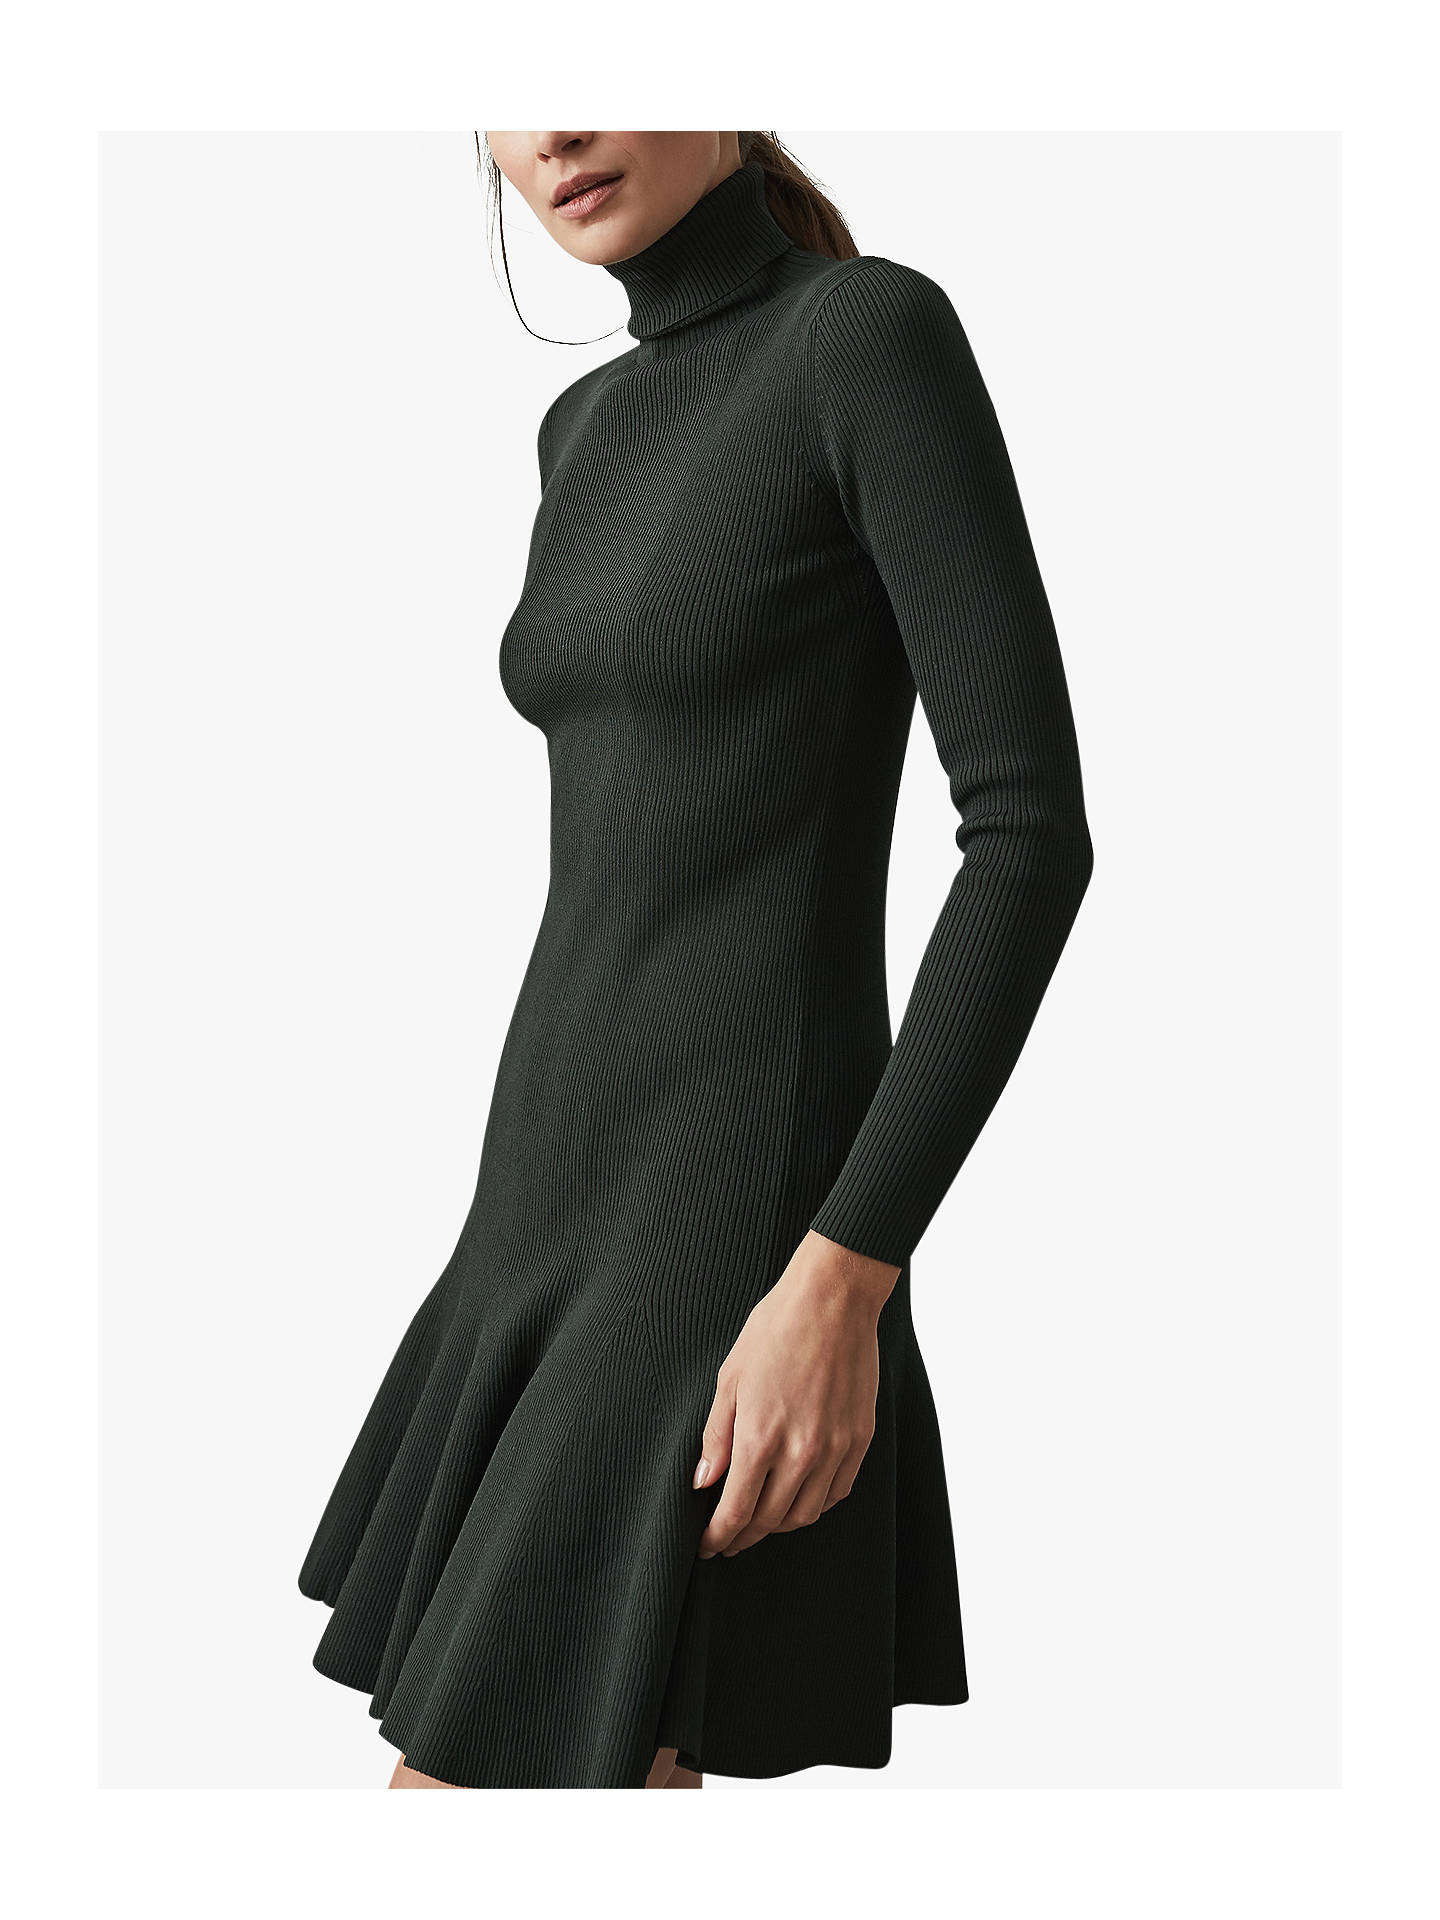 982d6d4b95 ... Buy Reiss Mimi Flippy Hem Dress, Dark Green, XS Online at johnlewis.com  ...